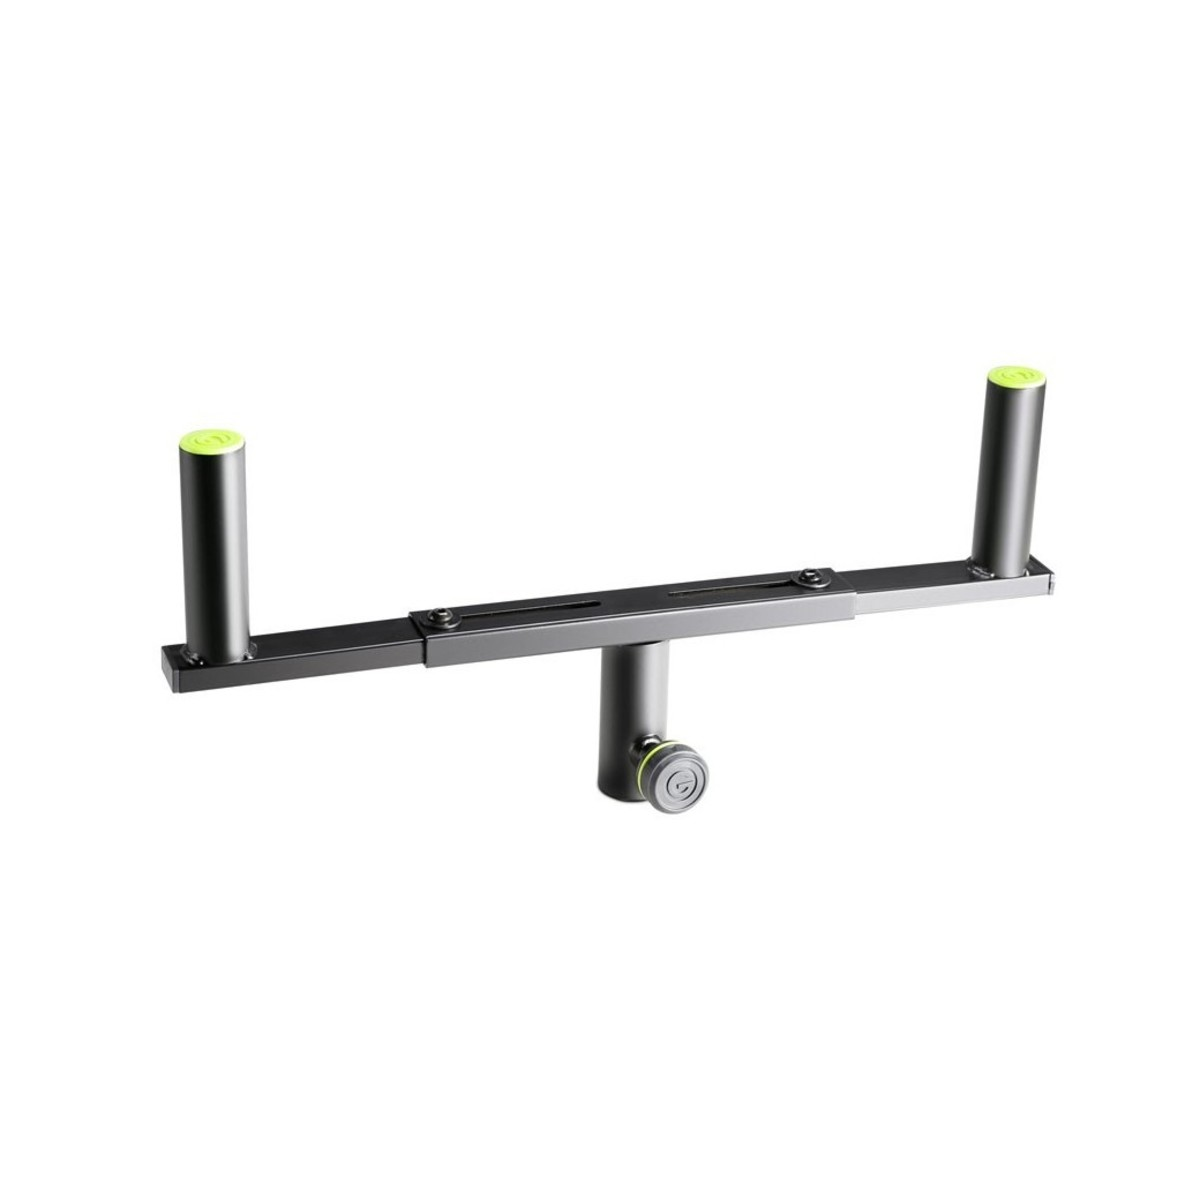 Gravity SAT36B T Bar For Speaker Stands at Gear4music